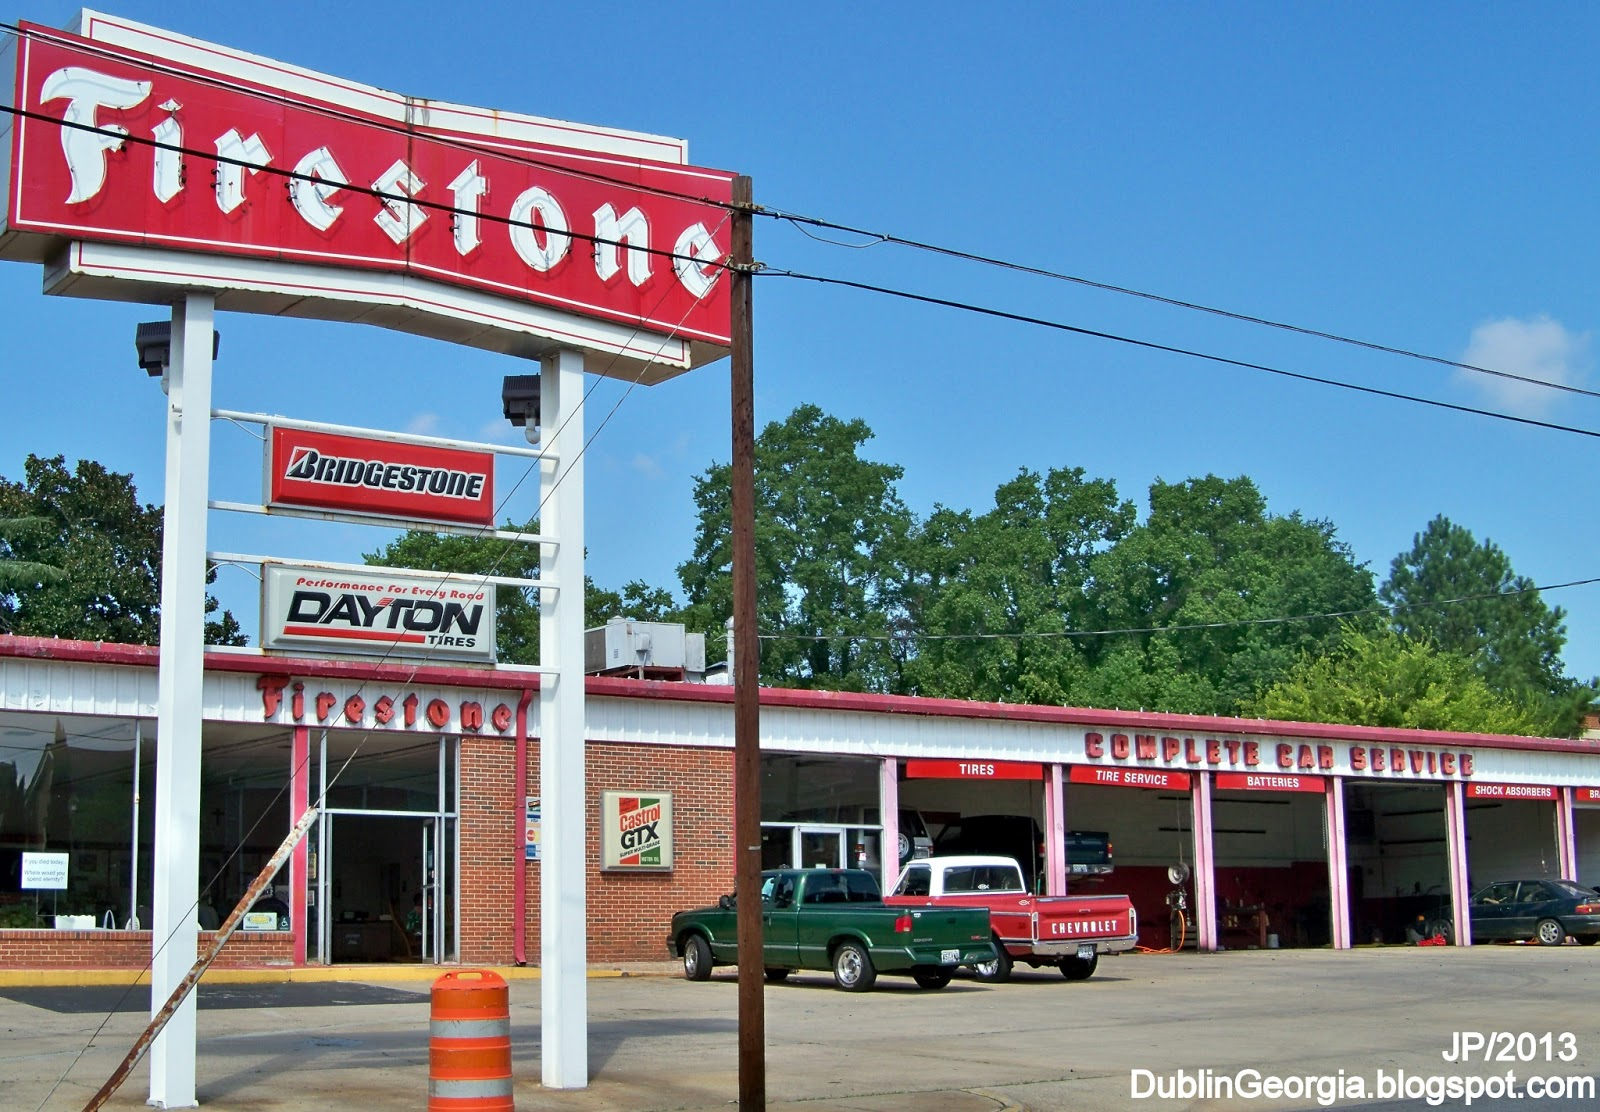 firestone dating site Meet firestone singles online & chat in the forums dhu is a 100% free dating site to find personals & casual encounters in firestone.